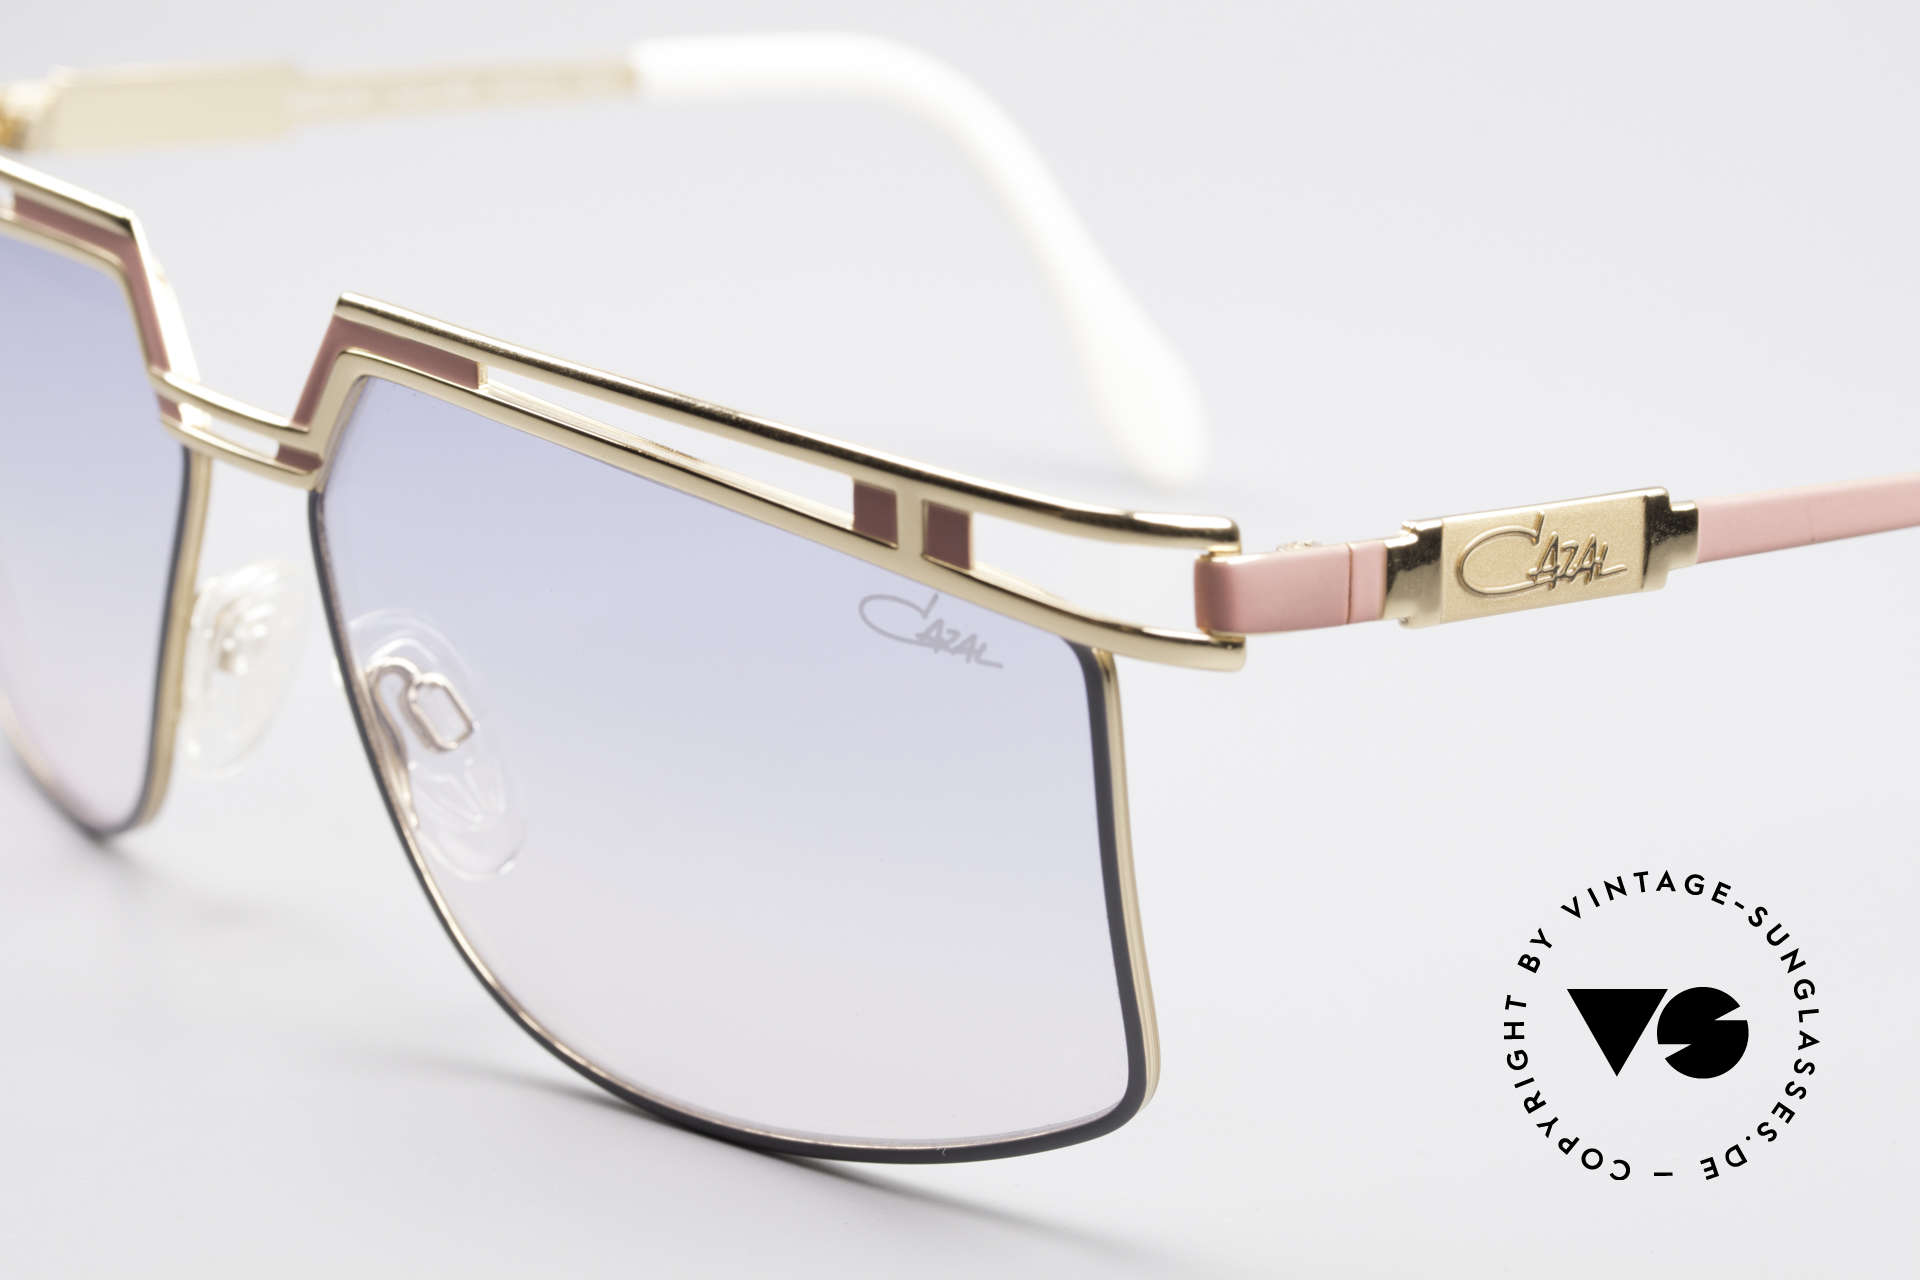 Cazal 957 XLarge HipHop Vintage Shades, code 369: pink-gray frame & blue-rosé gradient lenses, Made for Men and Women